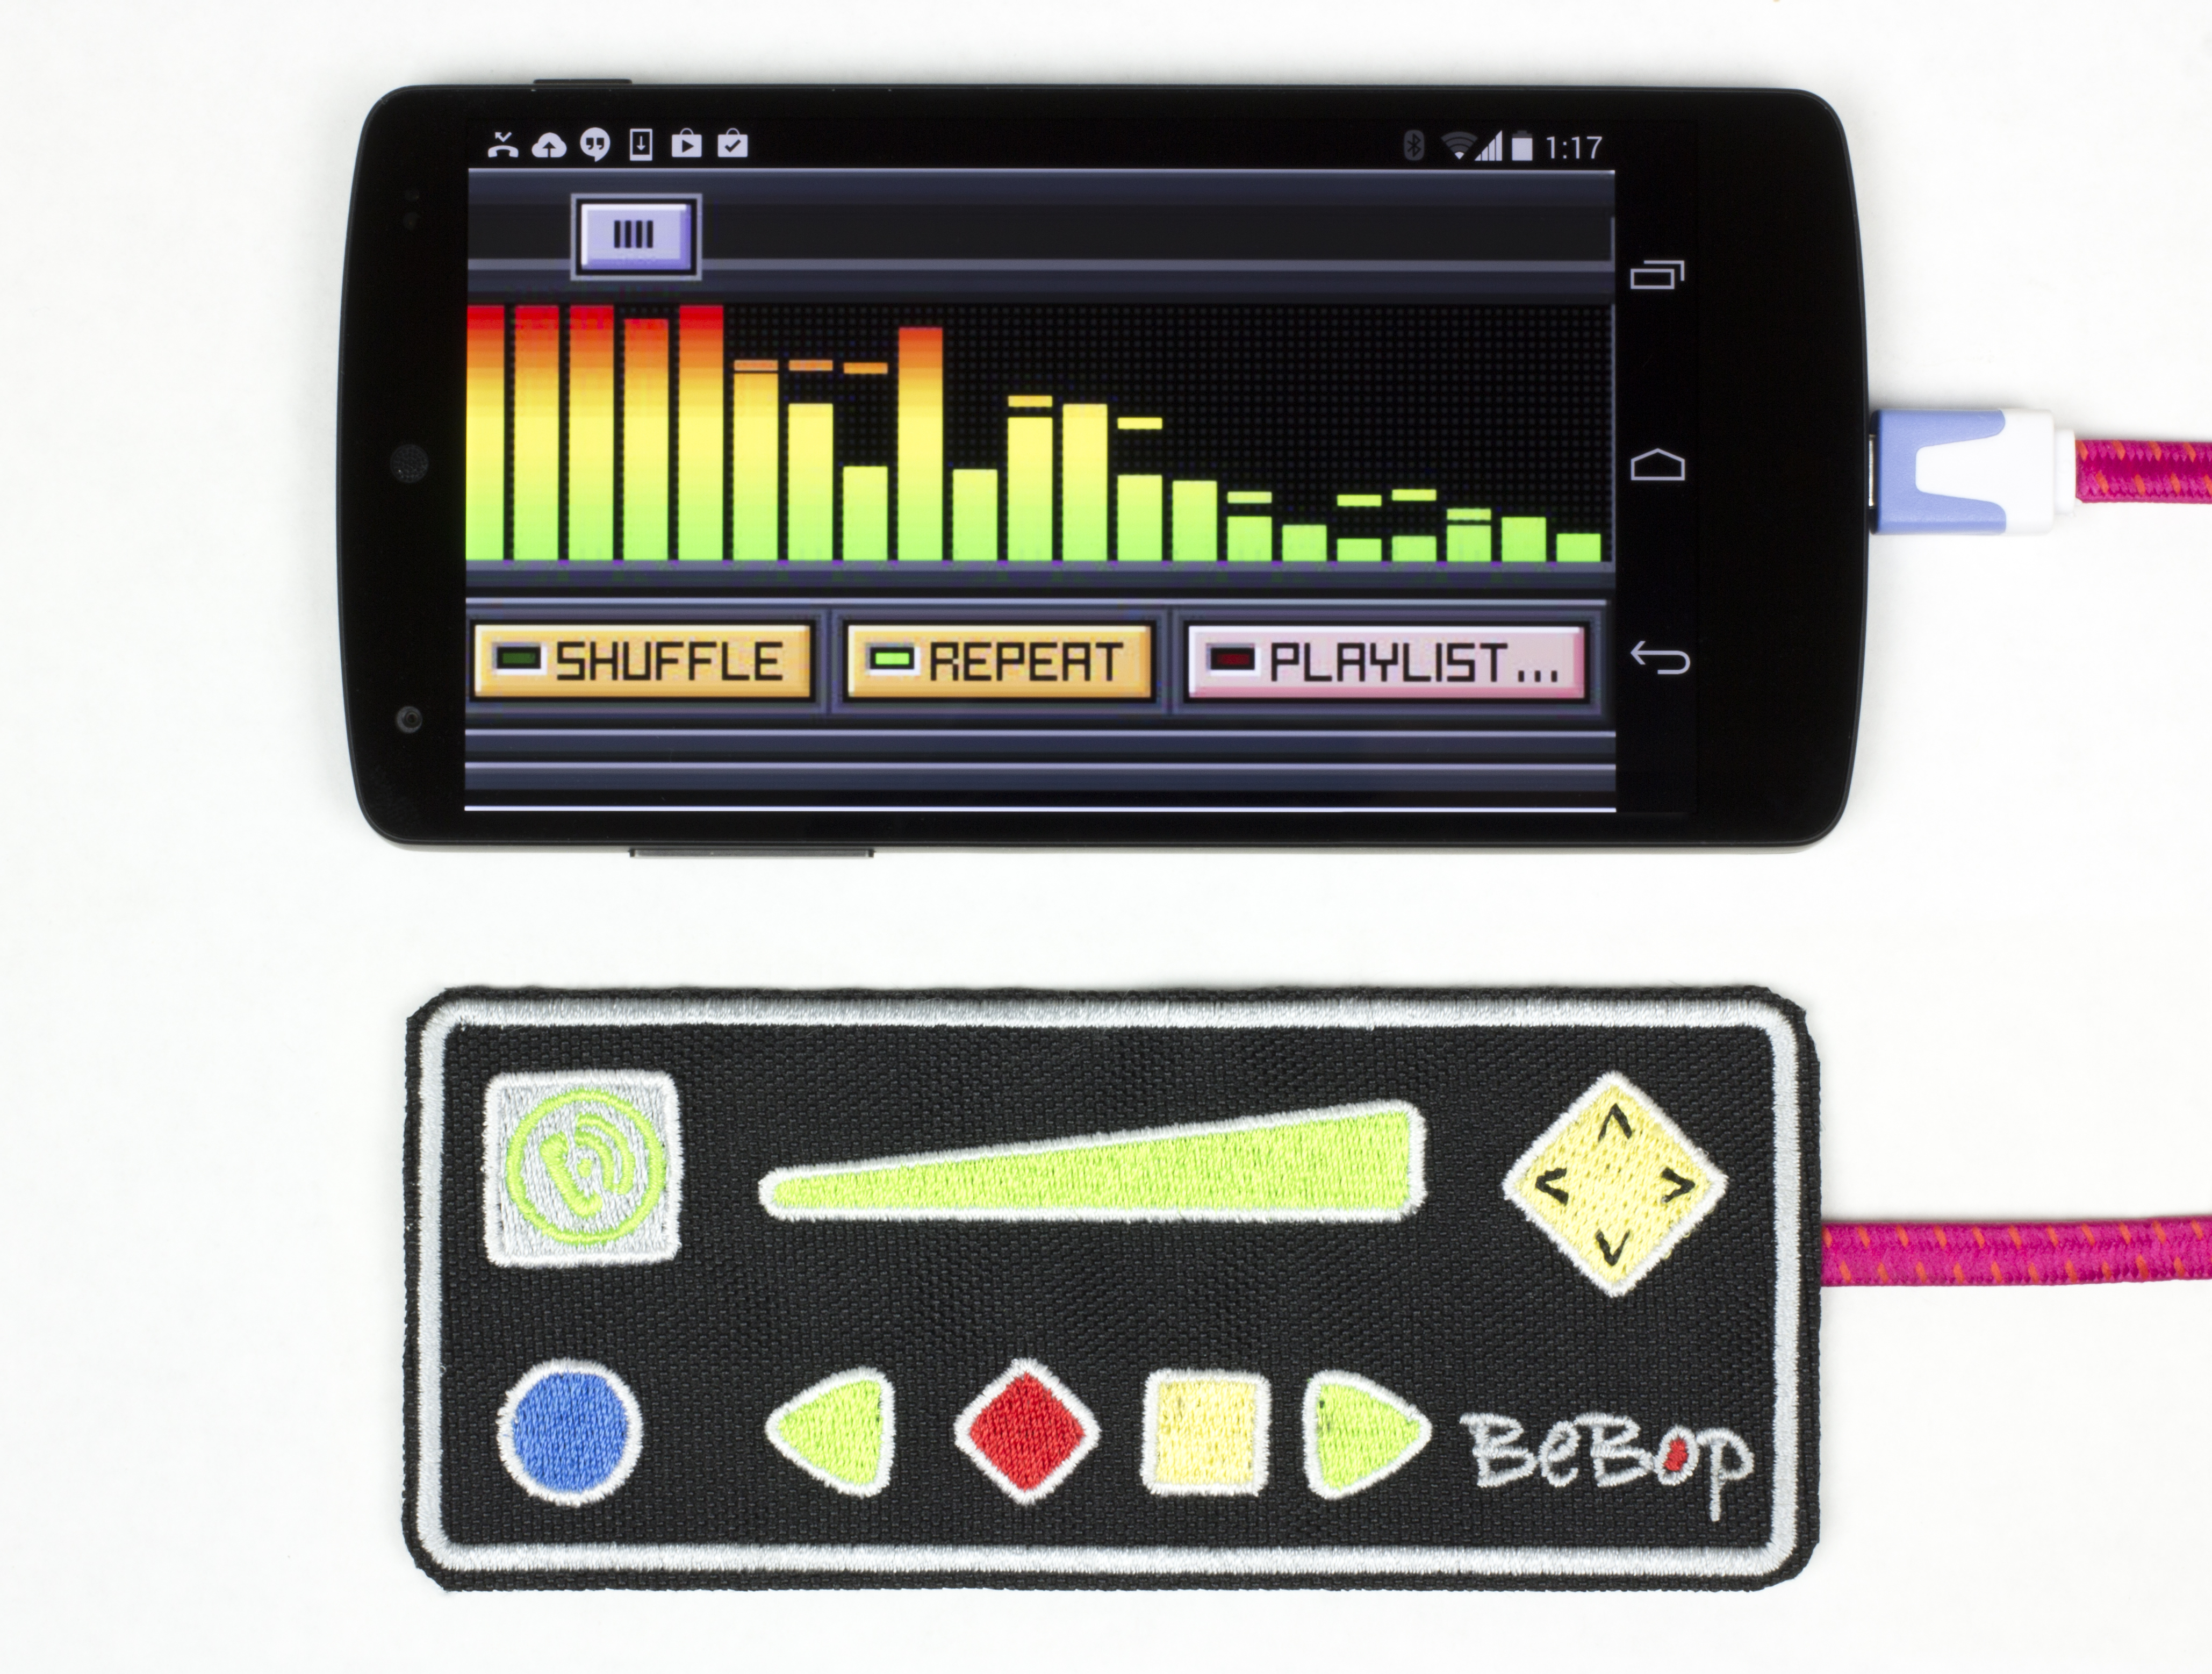 BeBop Wearable Sensor & Controller with Smartphone